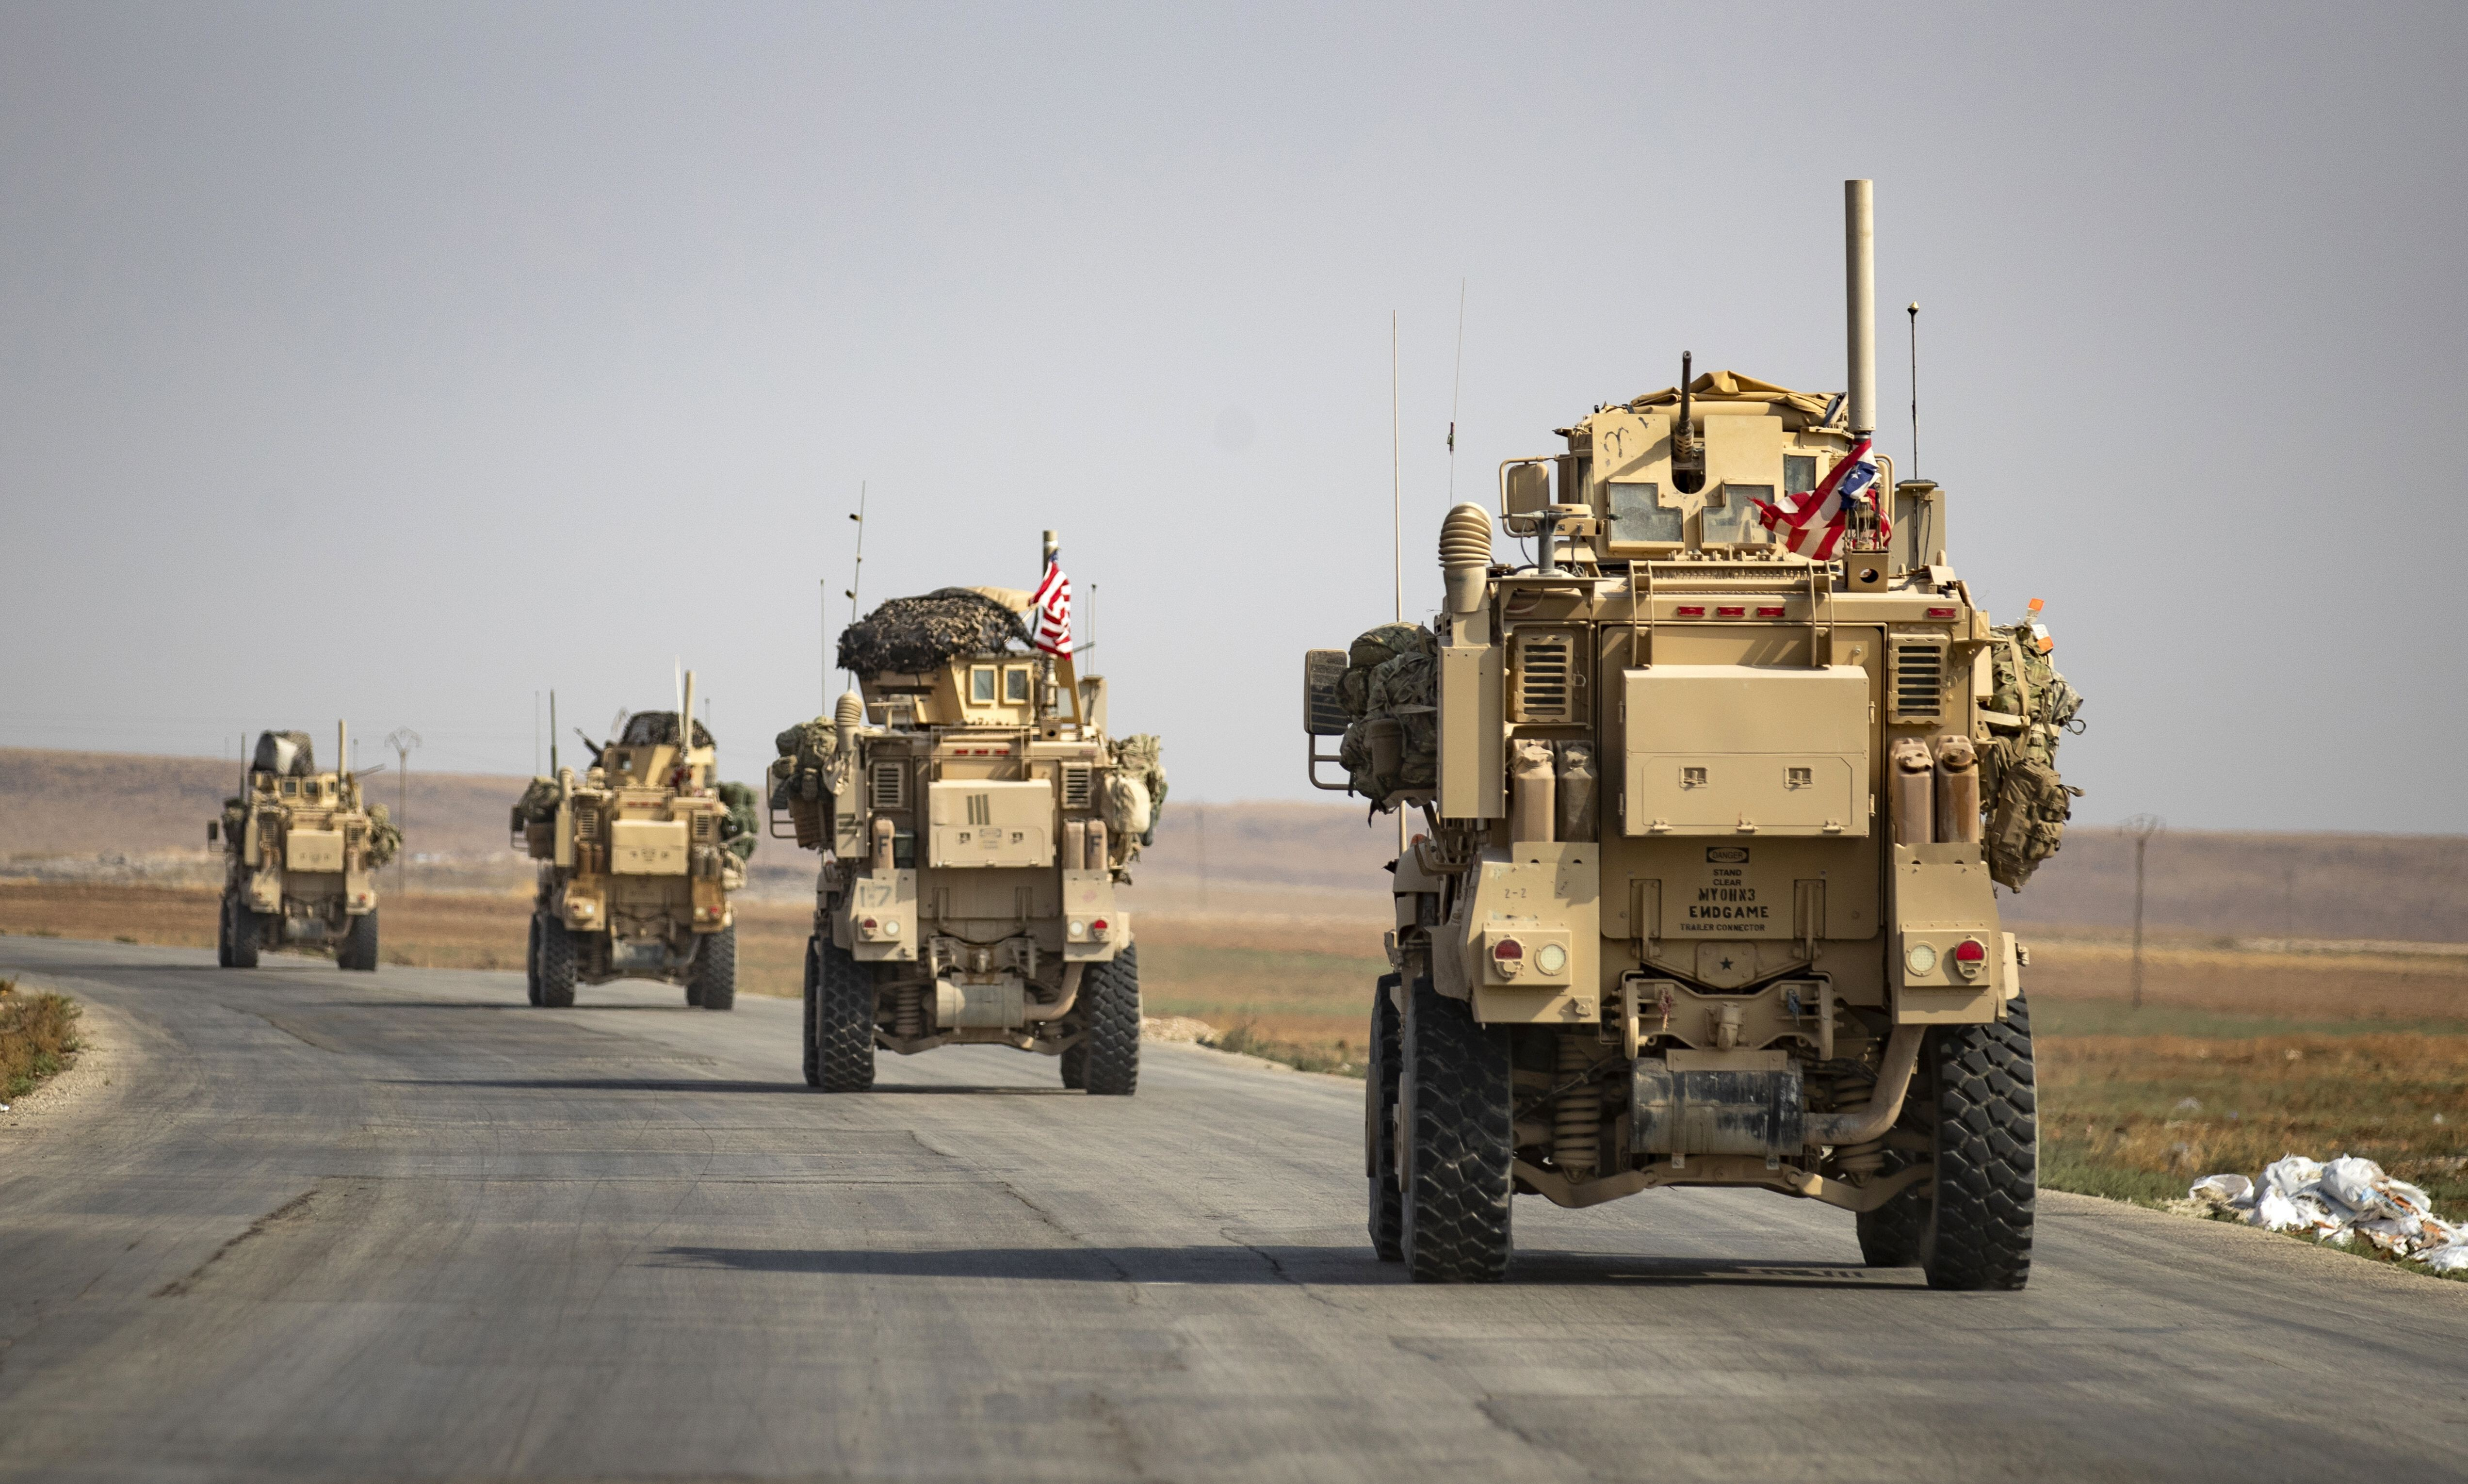 Drone attack targets US troops at US base in Syria, initial assessment suggests no US injuries